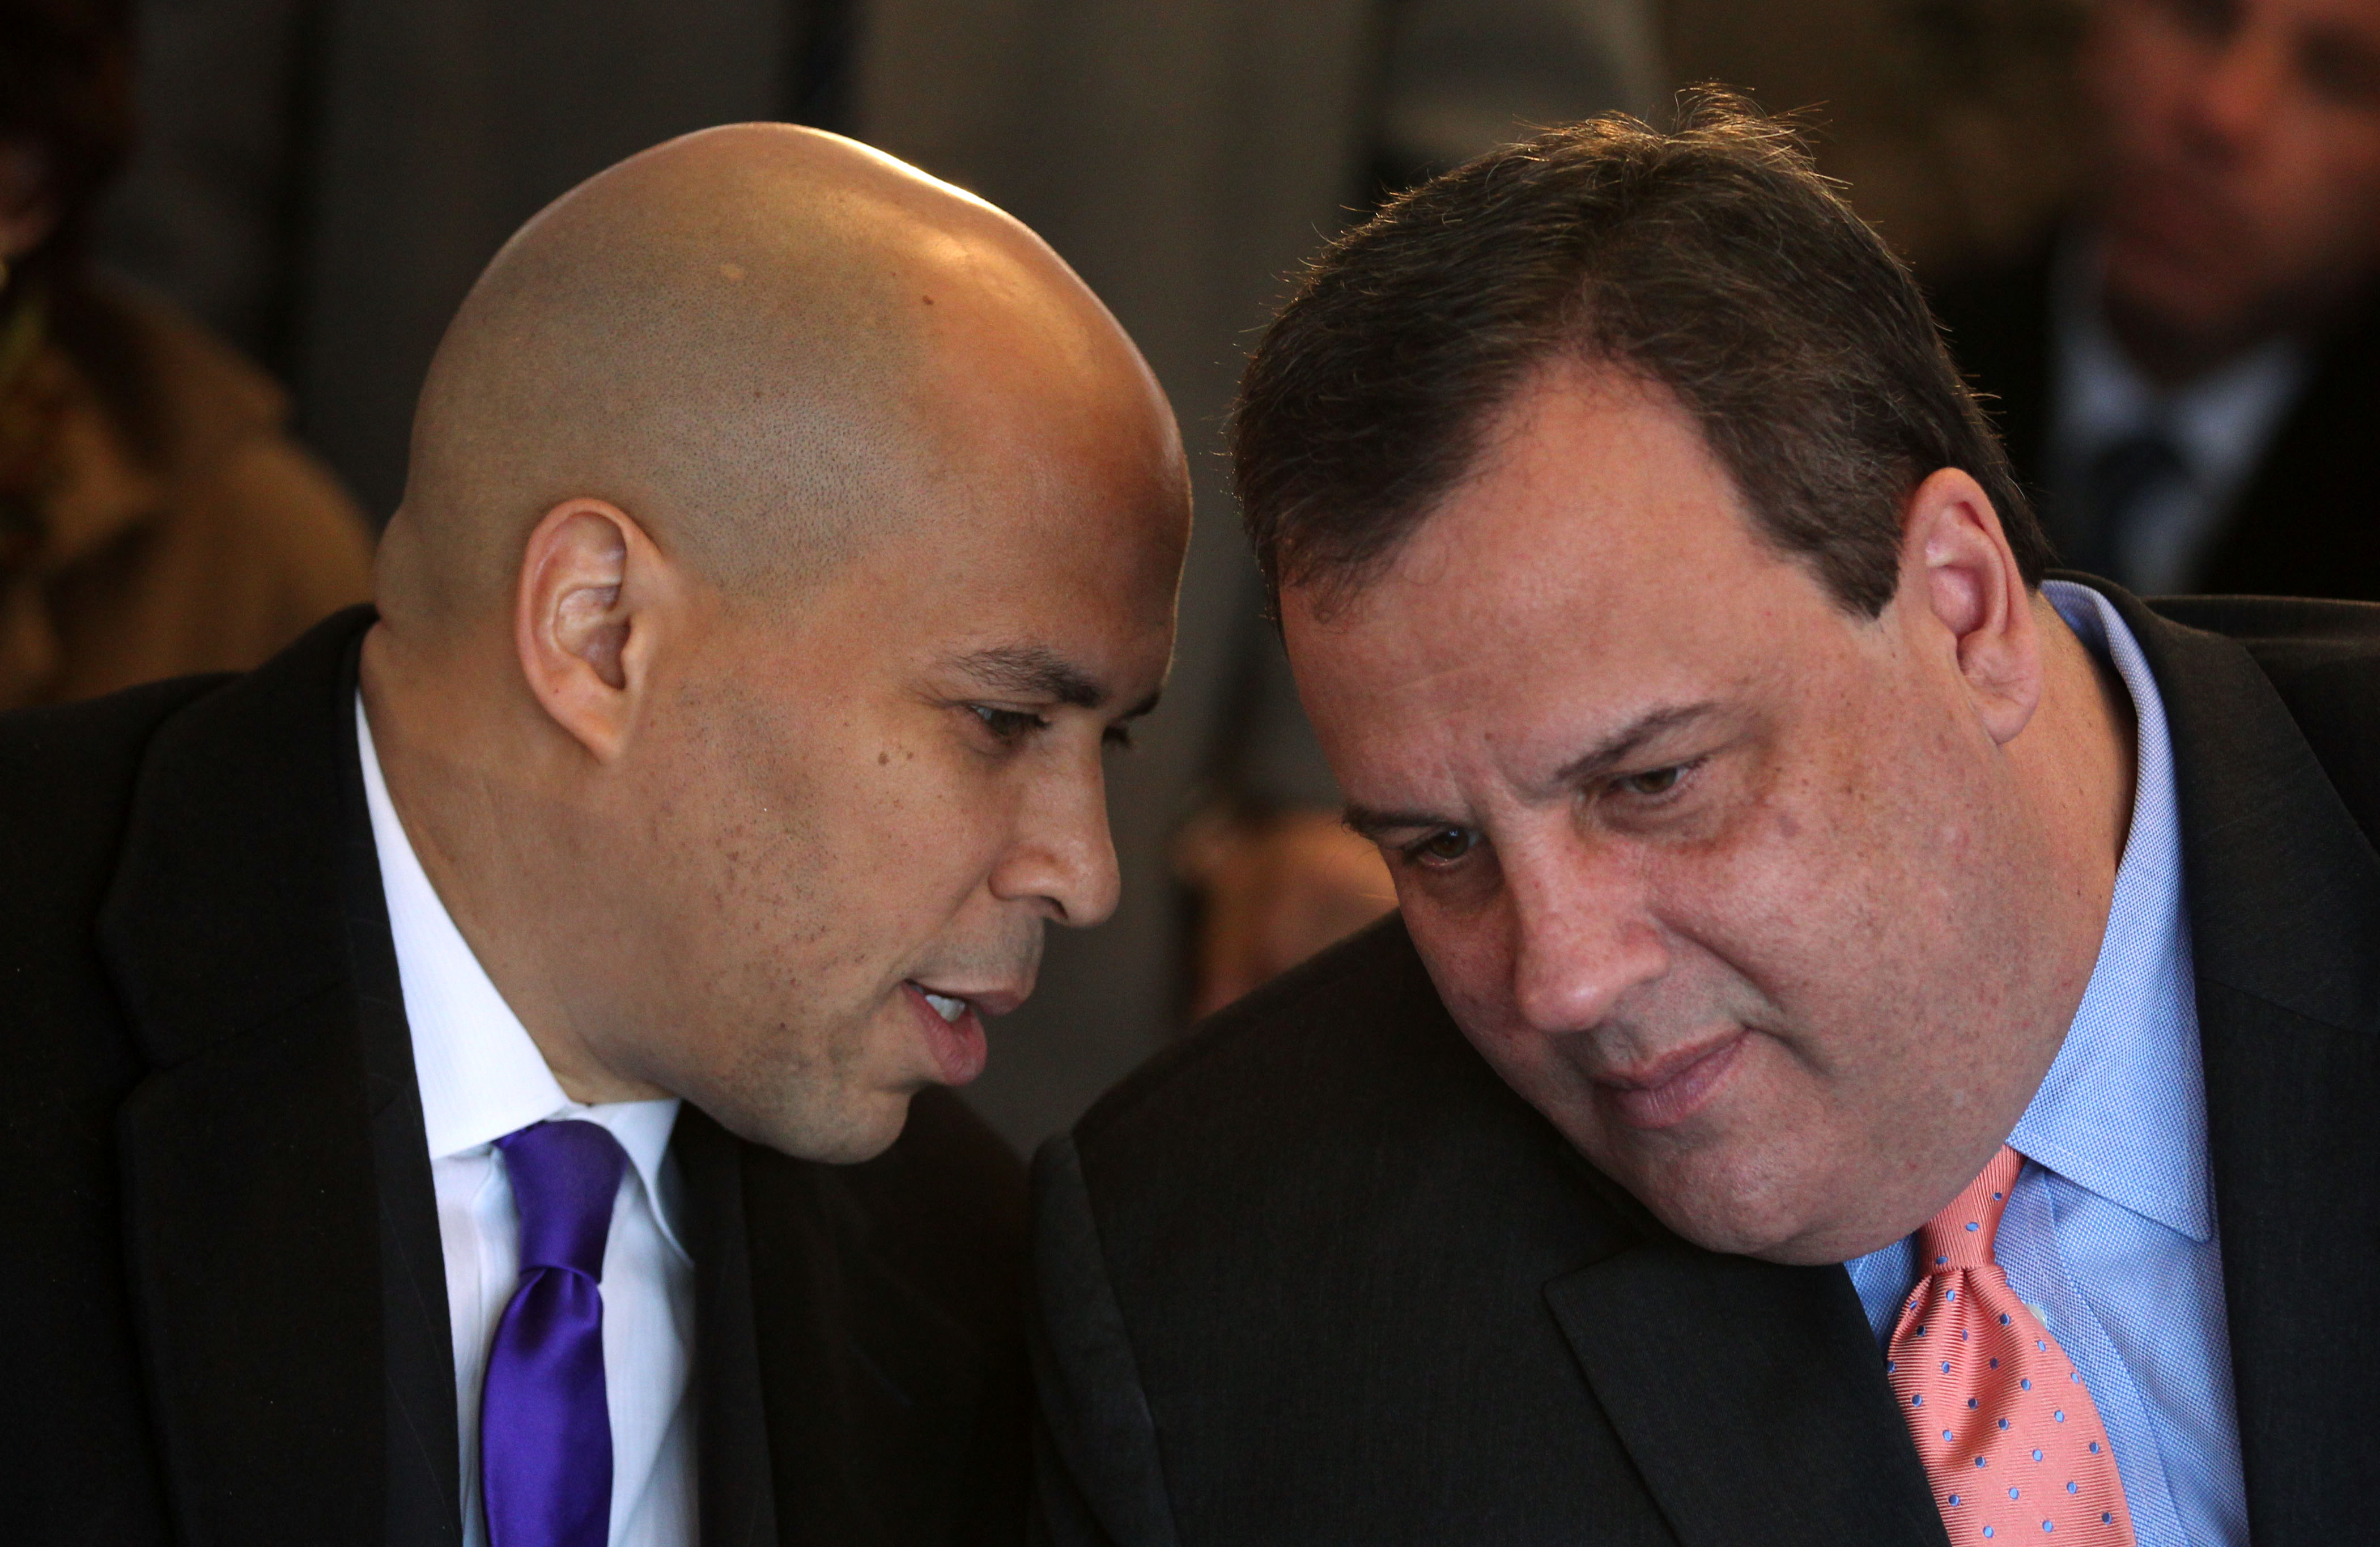 Cory Booker will not challenge Gov. Chris Christie for his office in 2013.